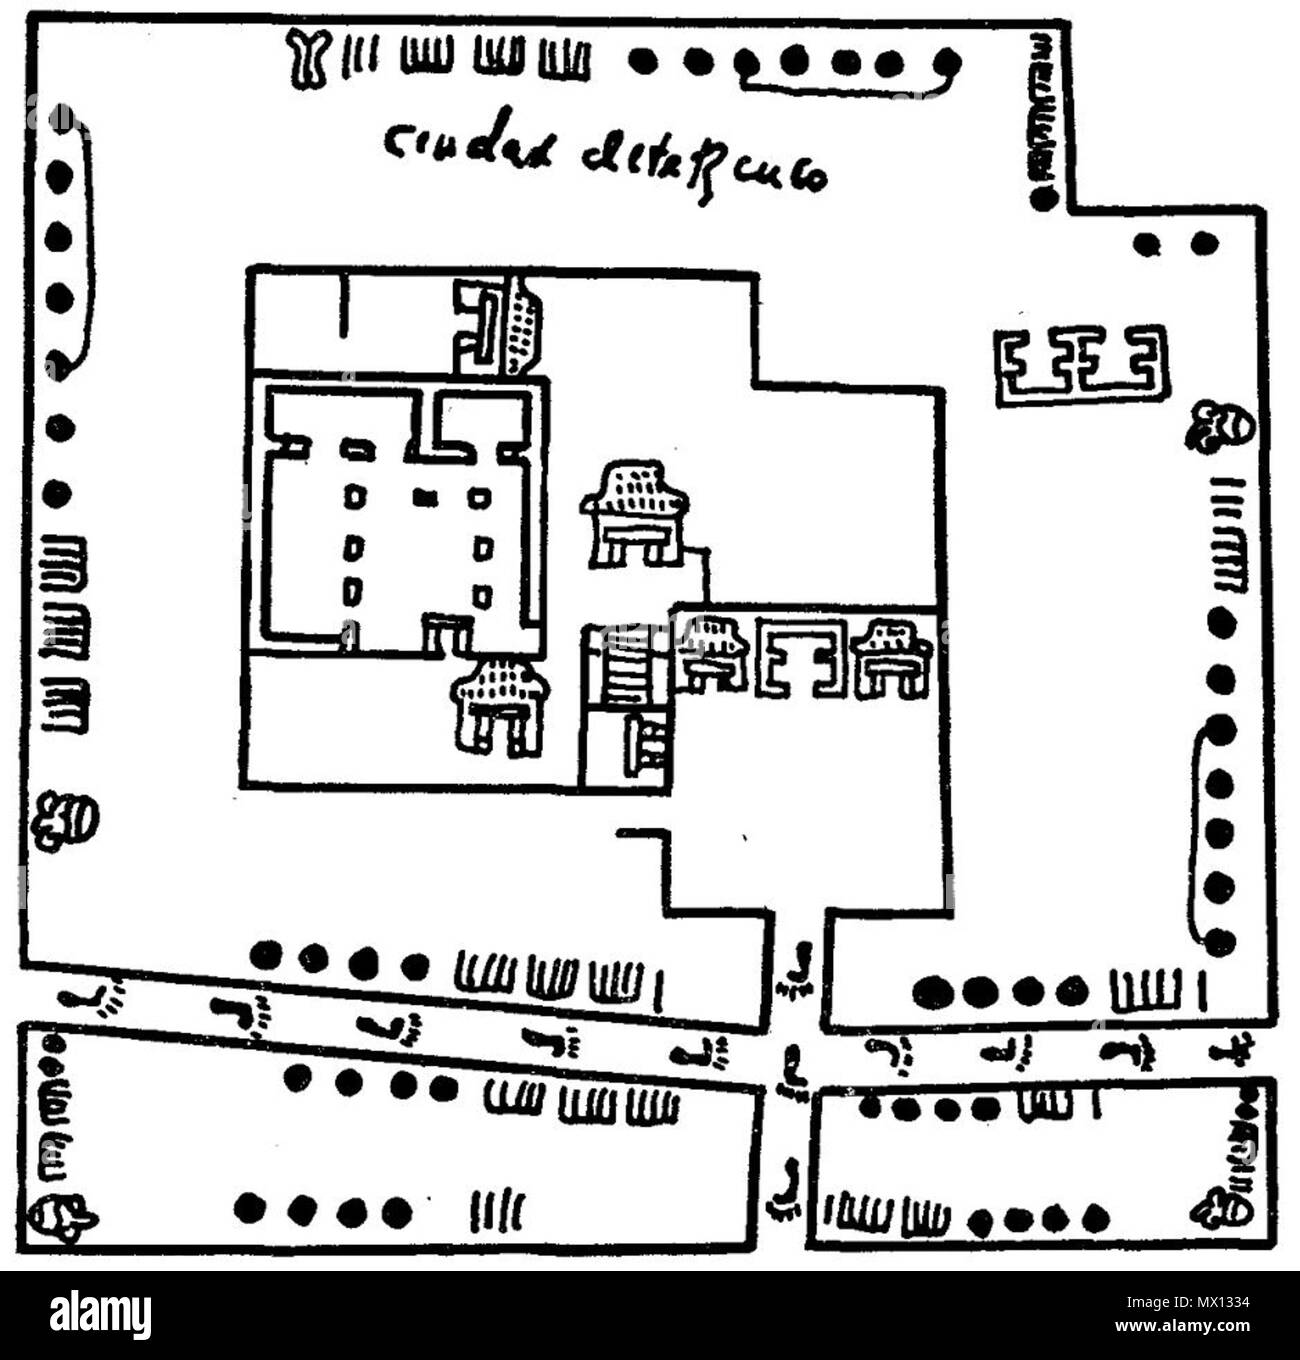 . English: Depiction of Texcoco city showing its dimensions by the Aztec Metric System detail in the Codex Humboldt Fragment VI . between 1500 and 1600. Unknown 592 Texcoco Aztec Metric System Codex Humboldt black and white detail Fragment VI - Stock Image